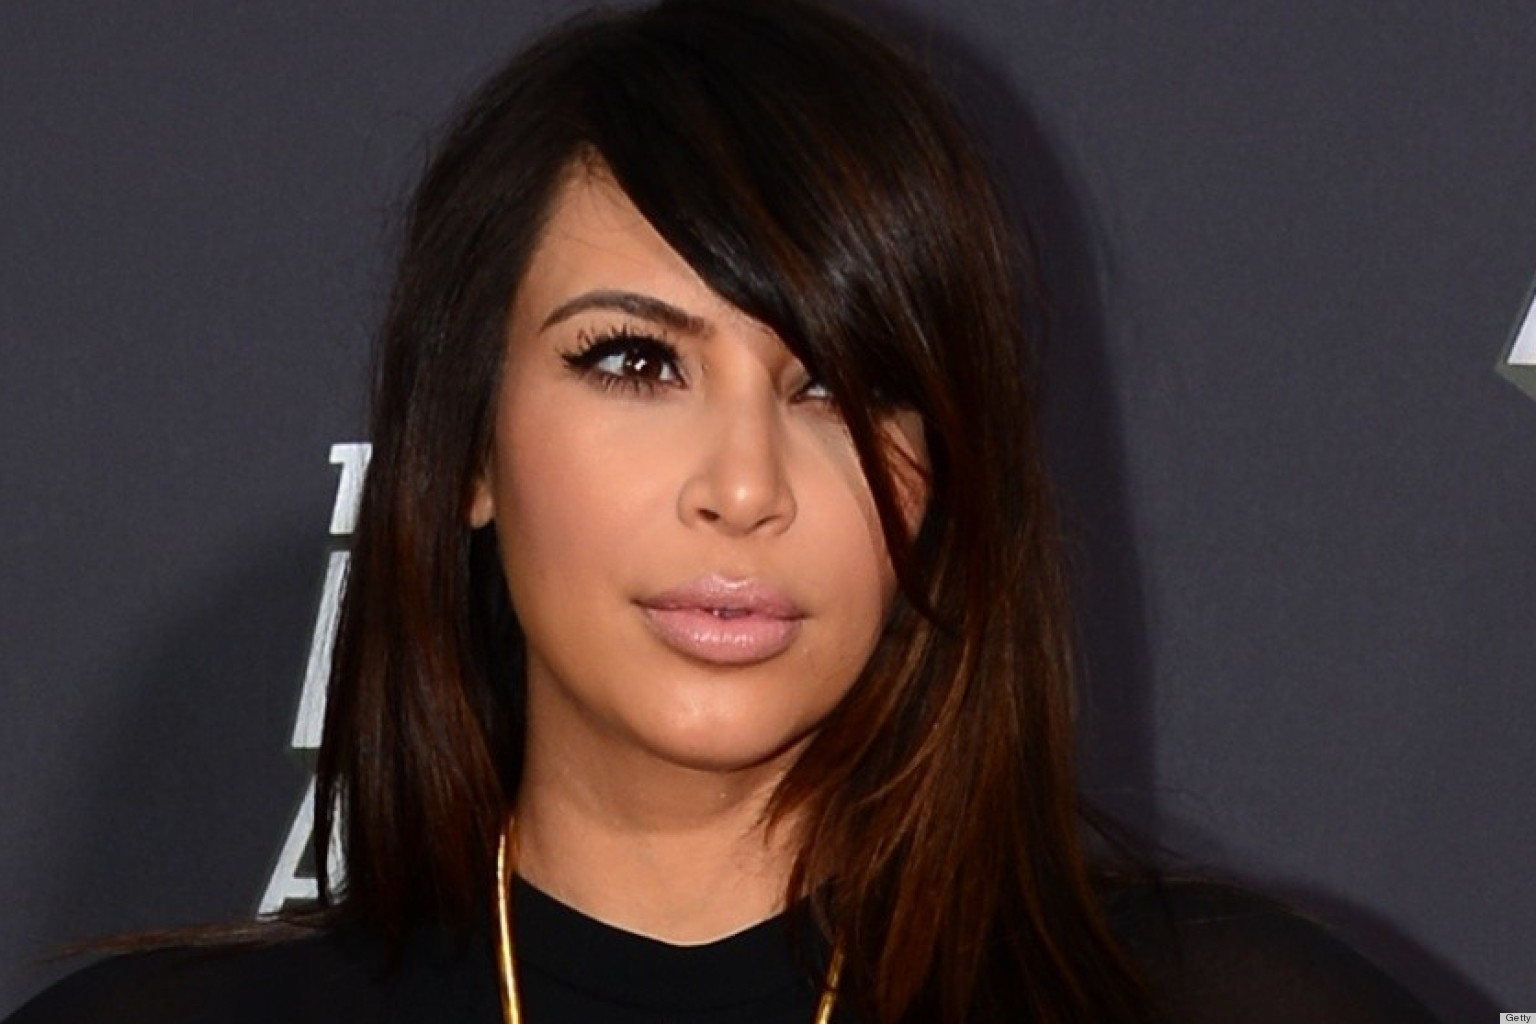 PHOTOS: Kim Kardashian Does Her LBD Justice At The MTV Movie Awards